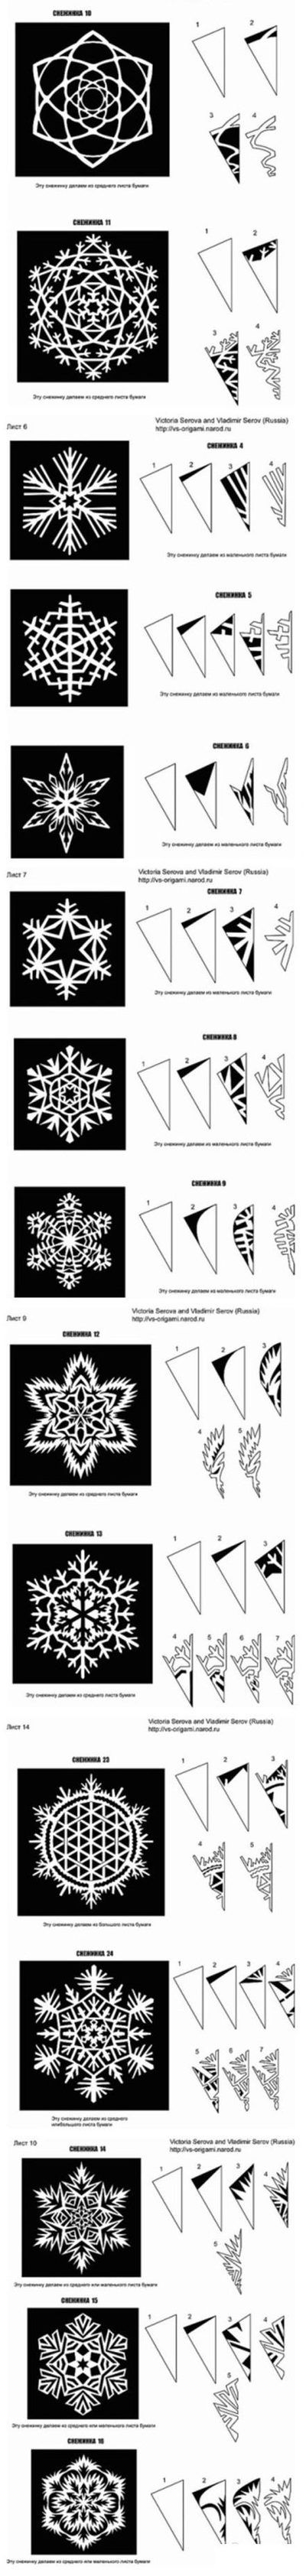 367 best paper snowflakes images on pinterest paper paper